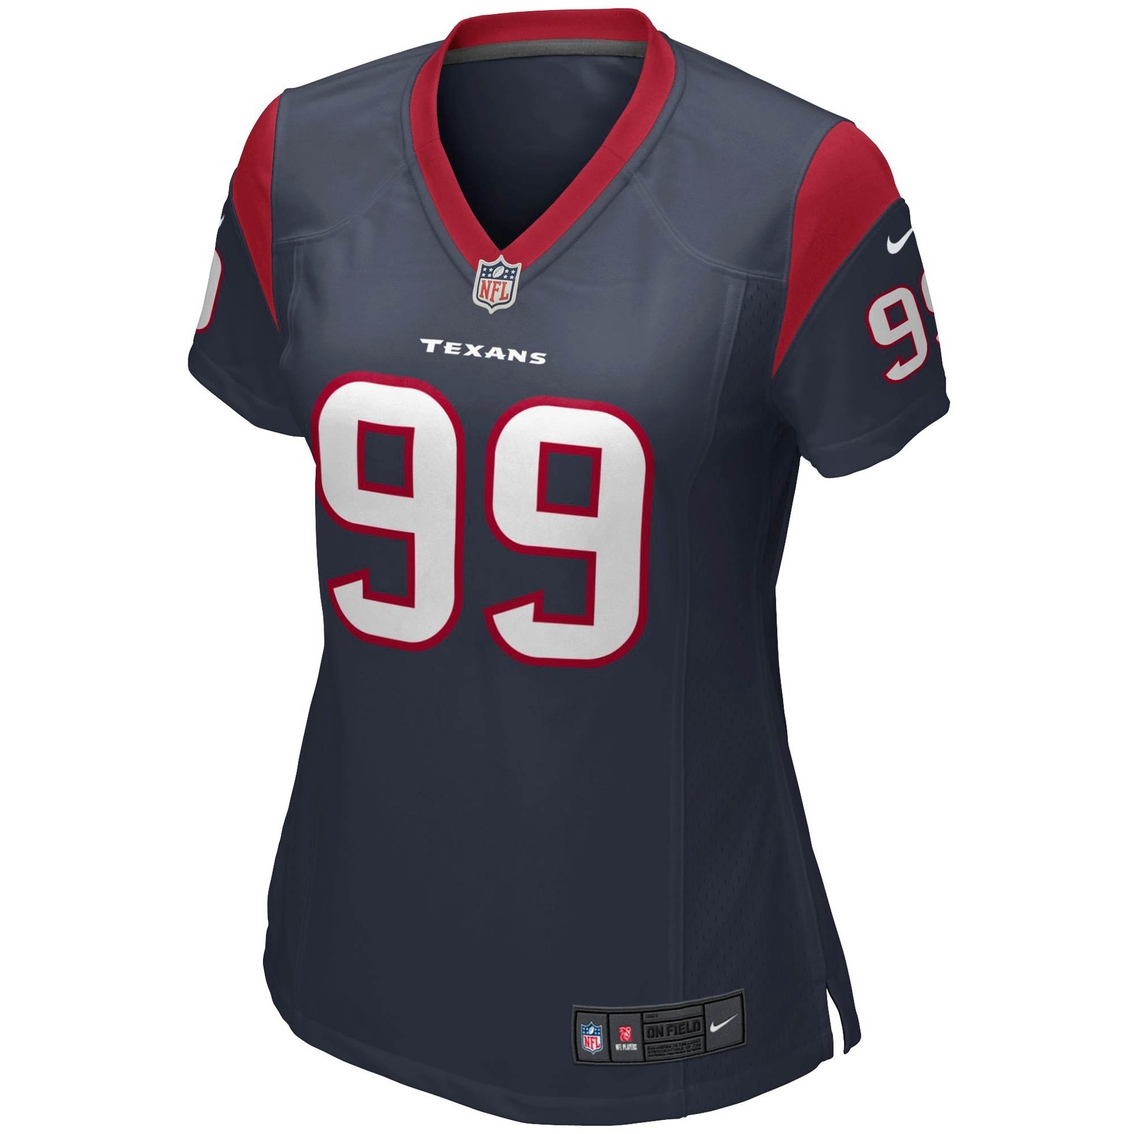 check out 1bffc 5ee72 Nike Nfl Houston Texans Women's Jj Watt Jersey | Jerseys ...